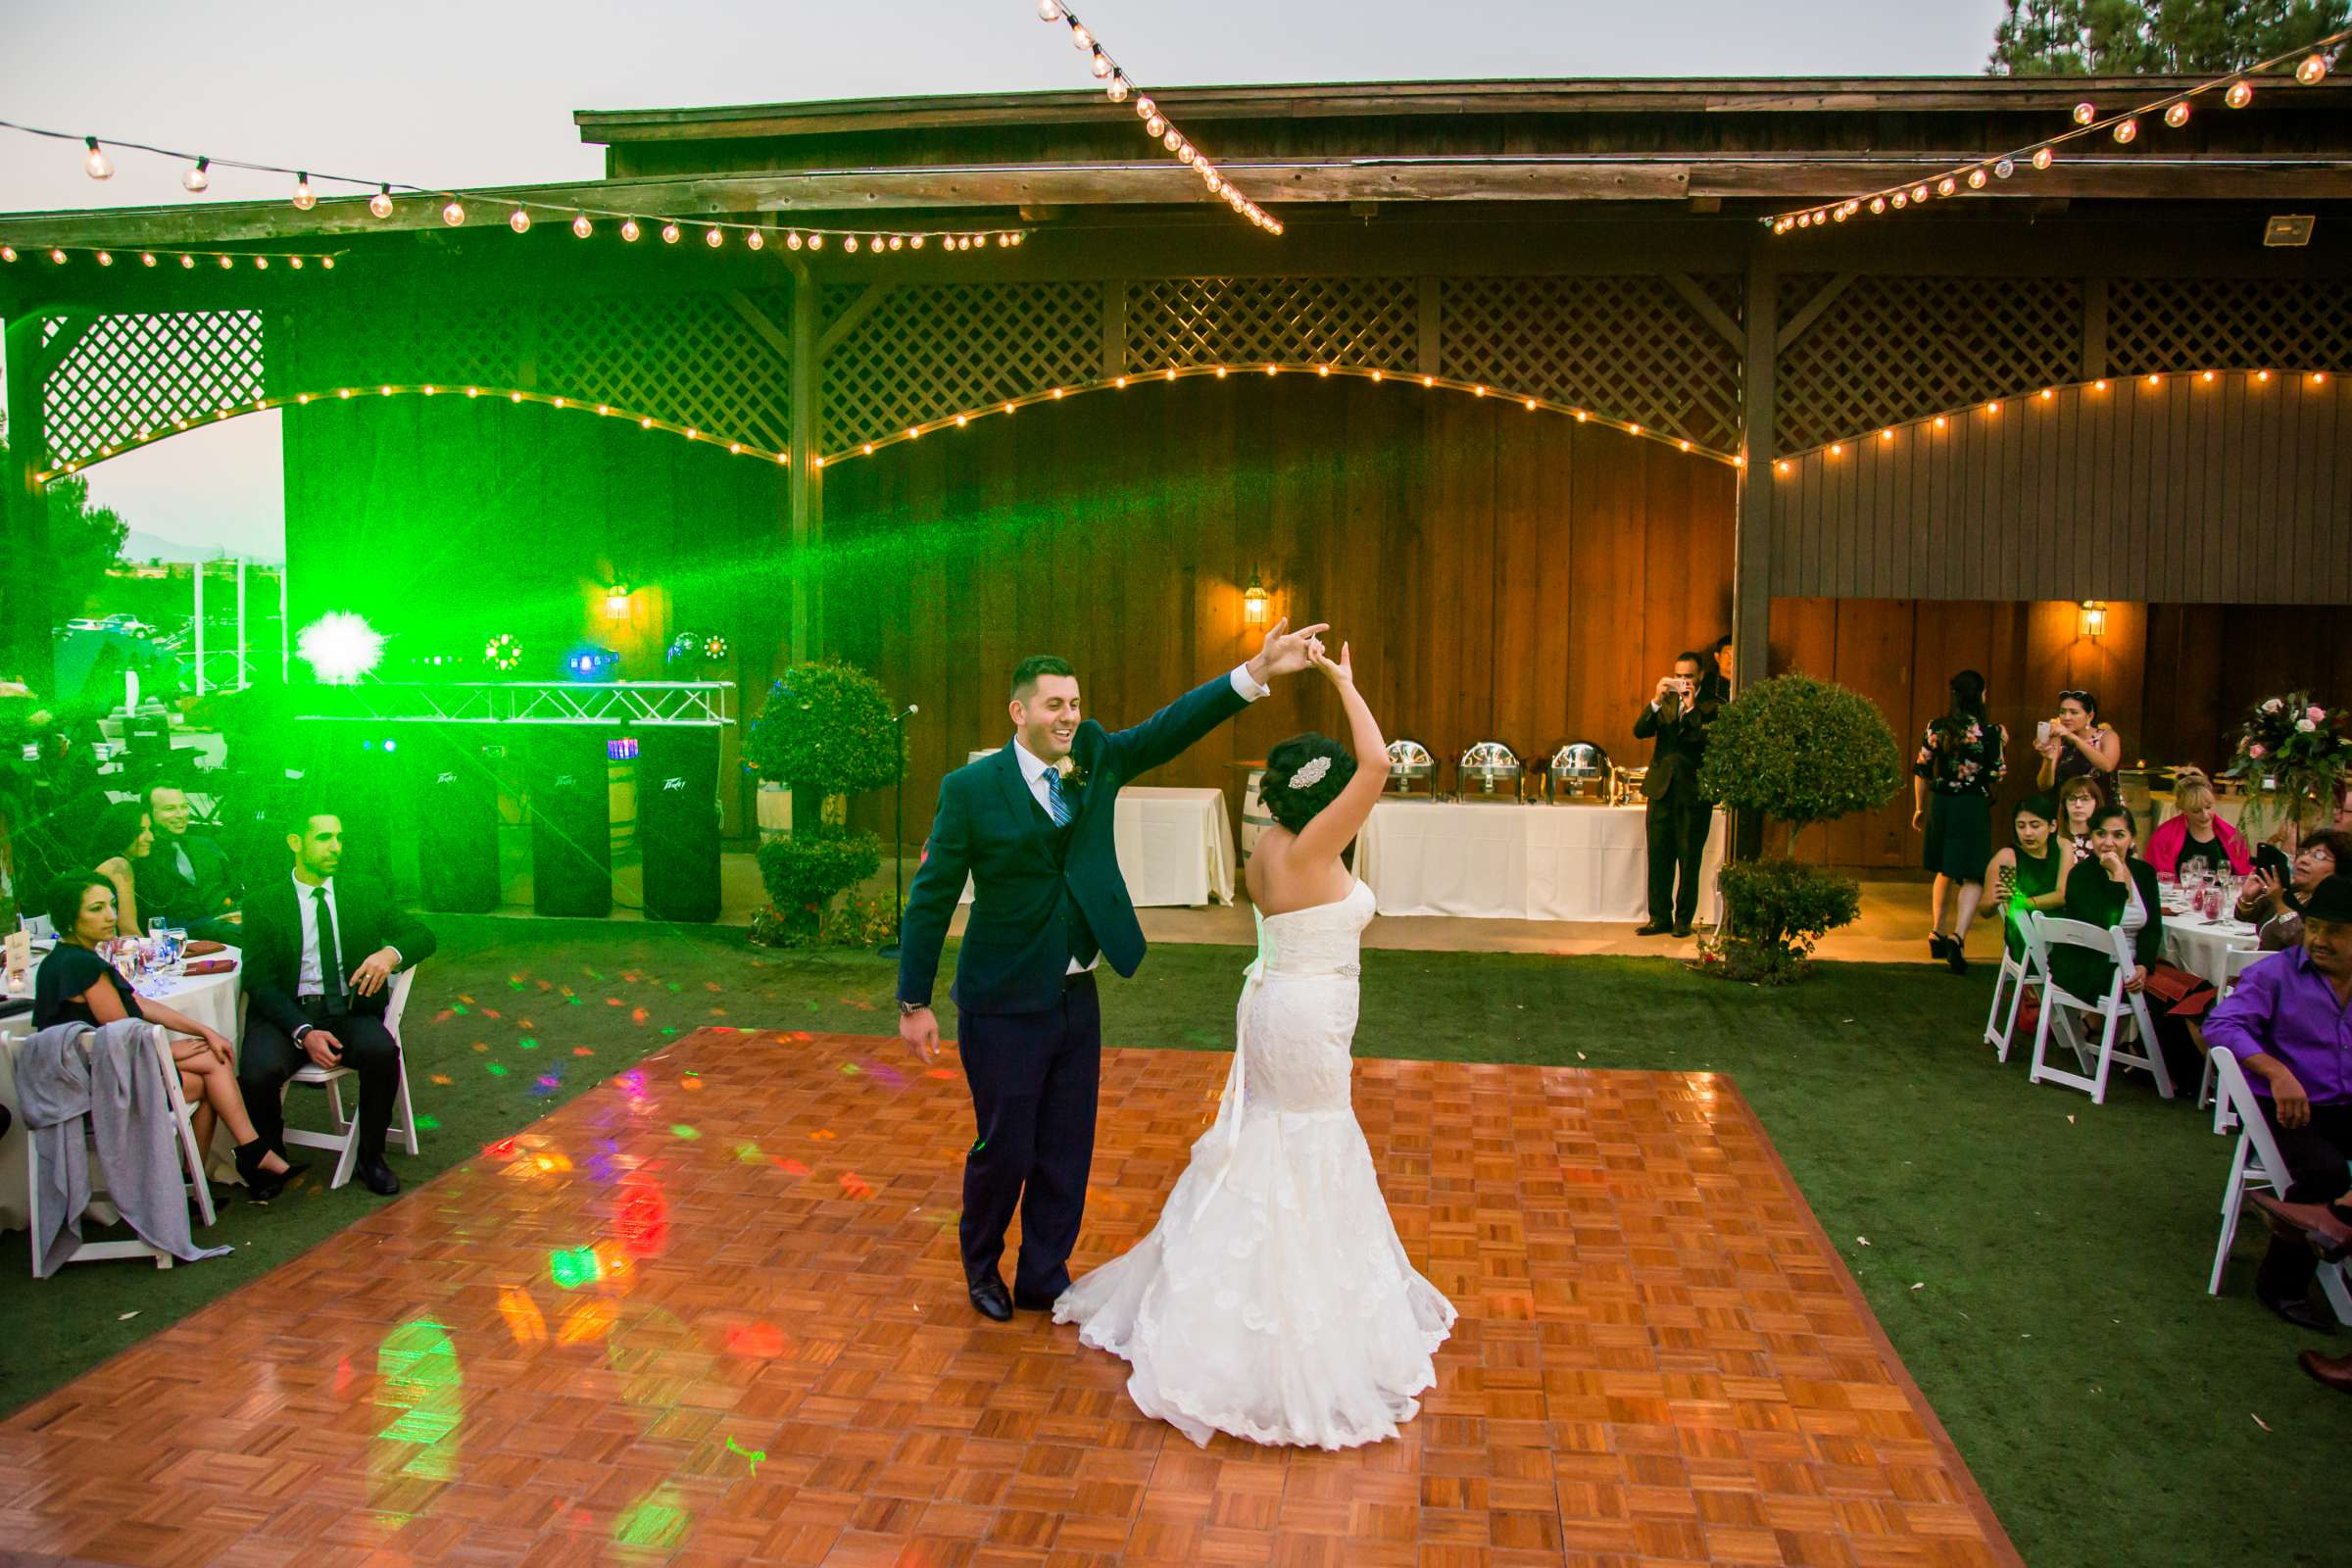 First Dance at Falkner Winery Wedding, Roxana and Cameron Wedding Photo #427441 by True Photography